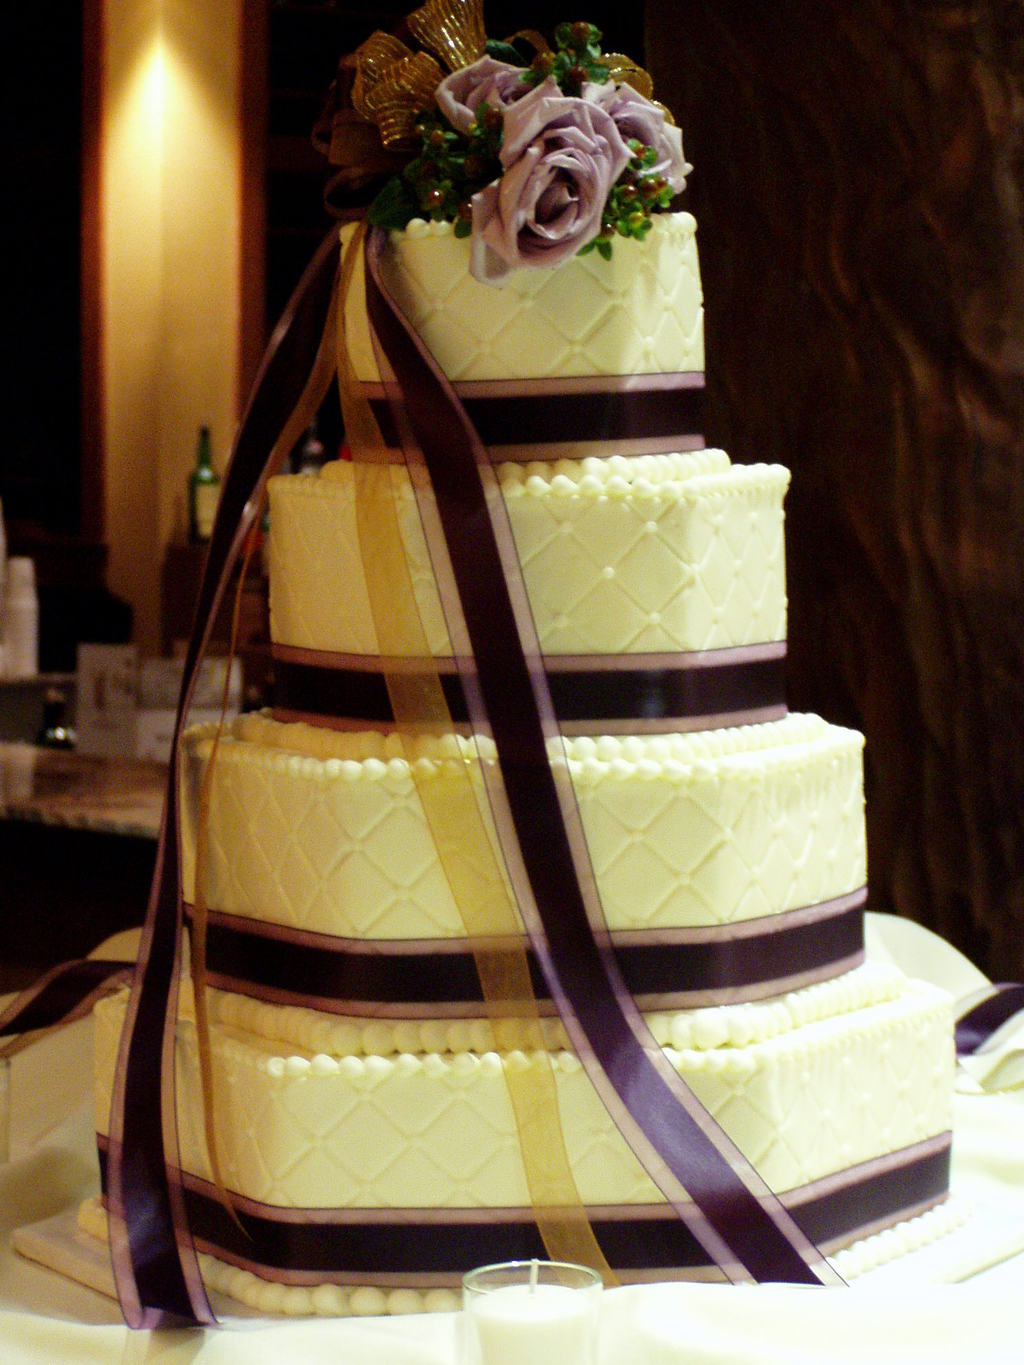 Arizona_20trip_20_20wedding_20cakes_20020.original.full